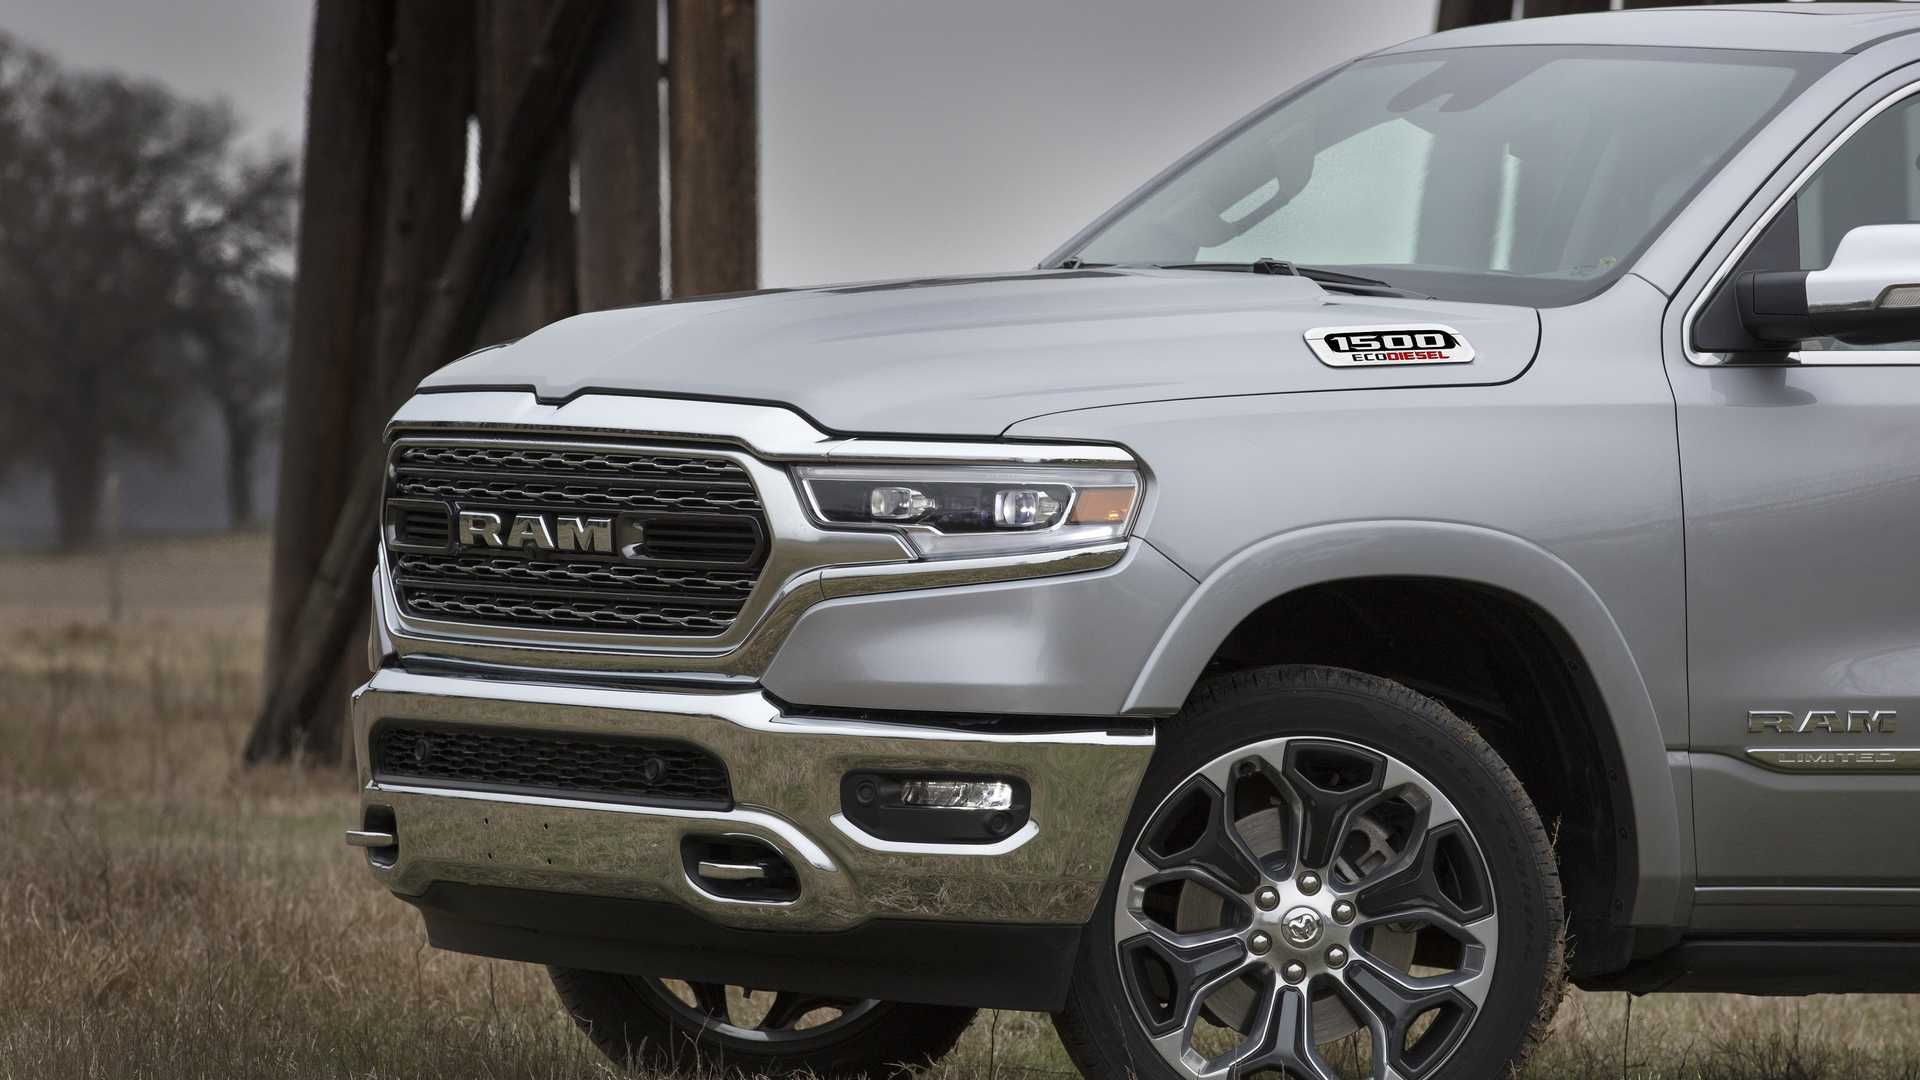 67 Concept of 2020 Dodge Ram Ecodiesel Review for 2020 Dodge Ram Ecodiesel